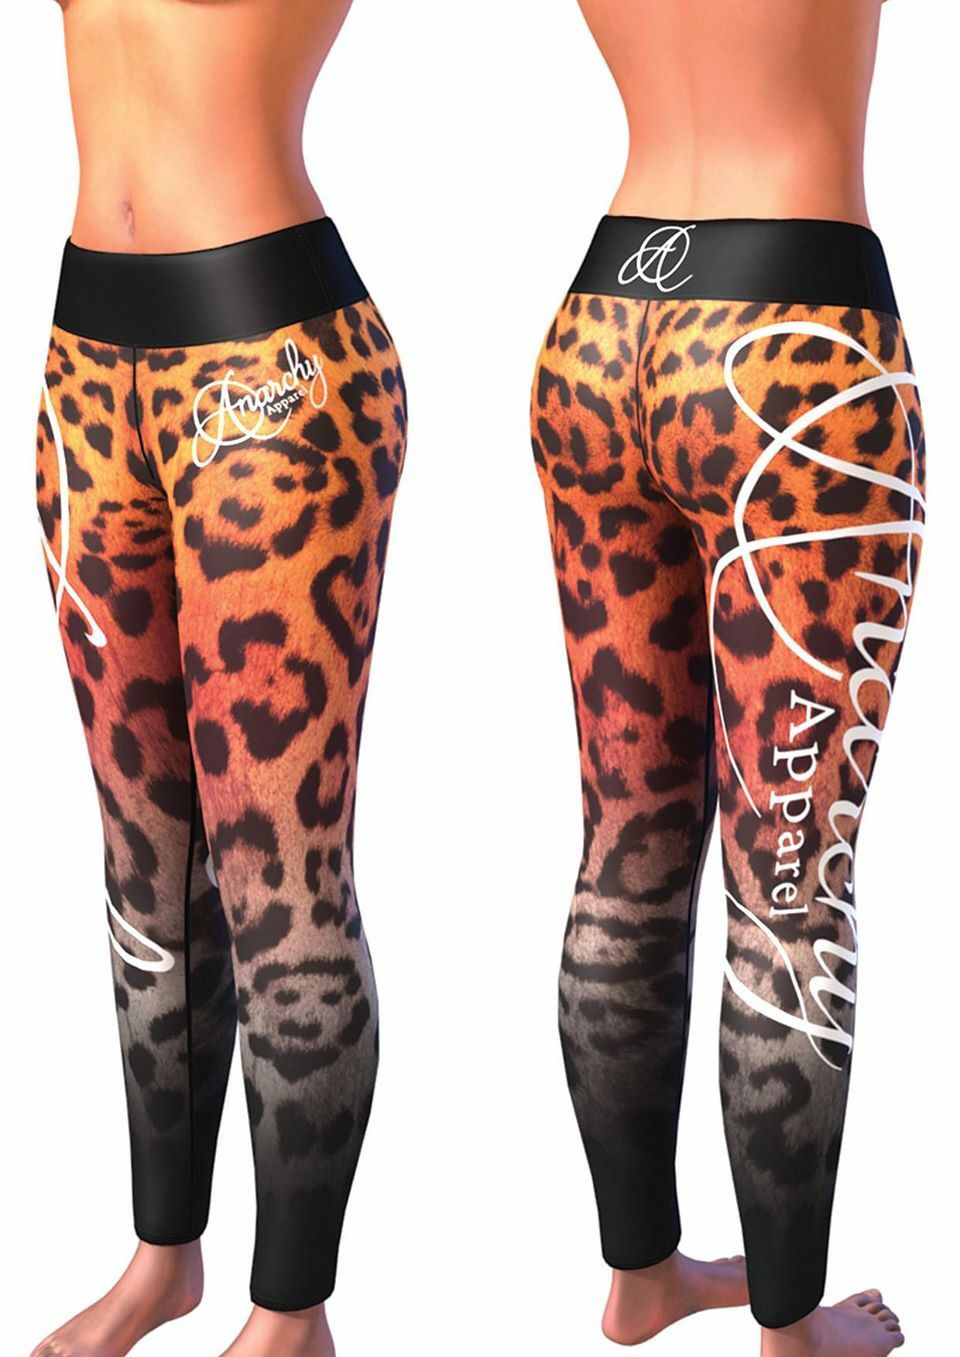 5b1b24520e9f6d Looking for your personal feedback S H A R E to Inspire Others !! #YogaPants  #ObsessedWrestler #Personal #Feedback #NewDesign #yoga #leopard #lepard ...